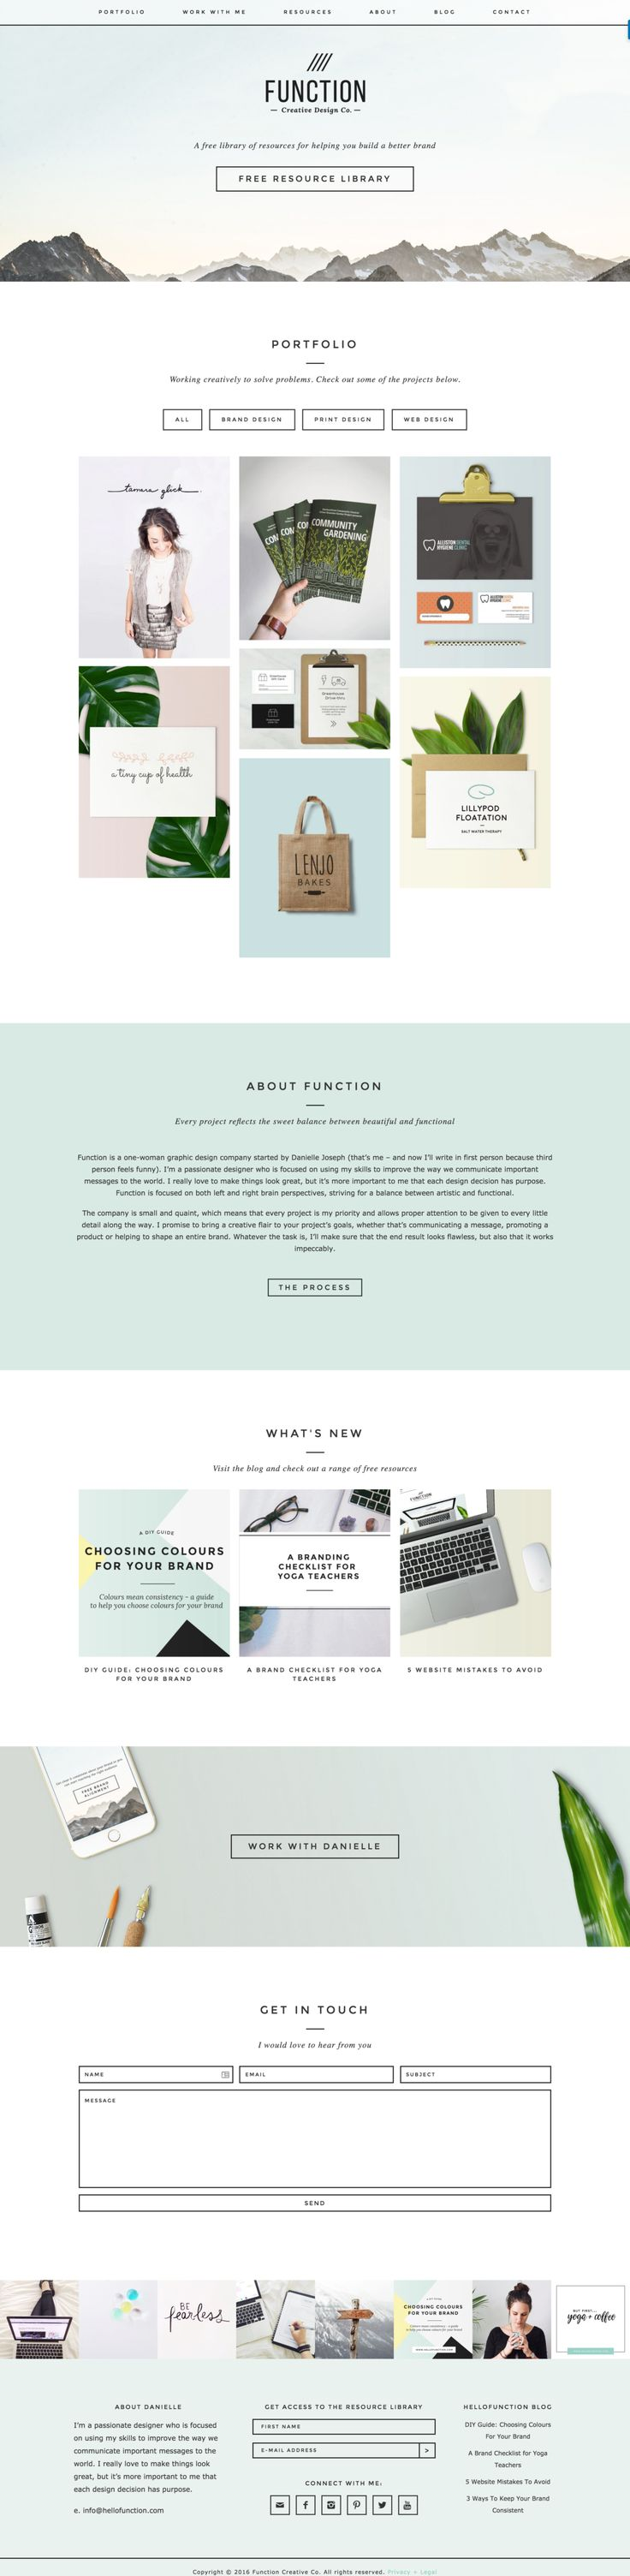 Check out Function Creative Co.'s website built using a Station Seven WP theme.